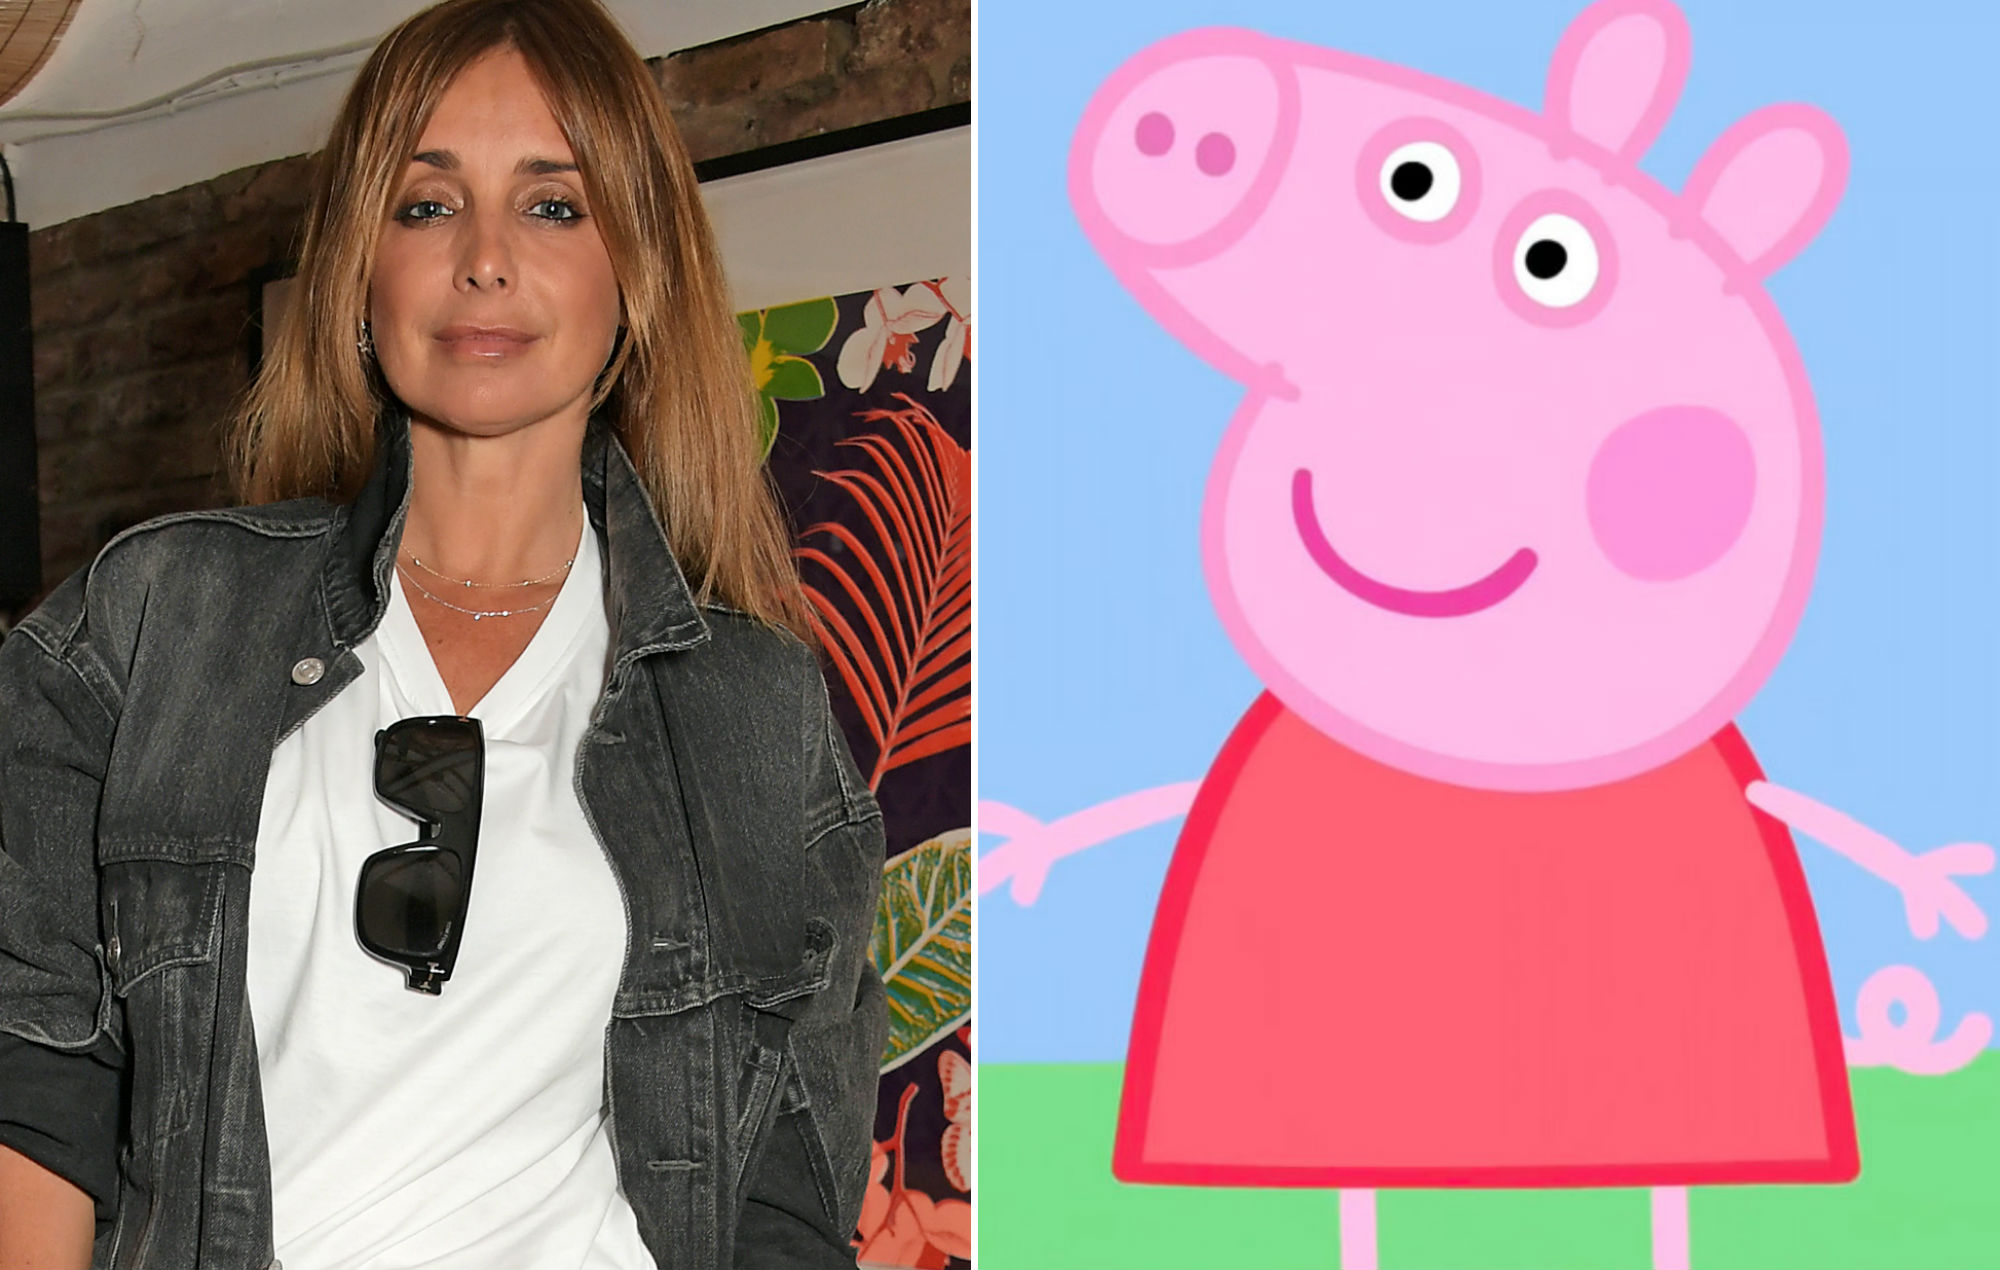 Louise Redknapp takes aim at Peppa Pig amid legal battle over her track 'Naked'